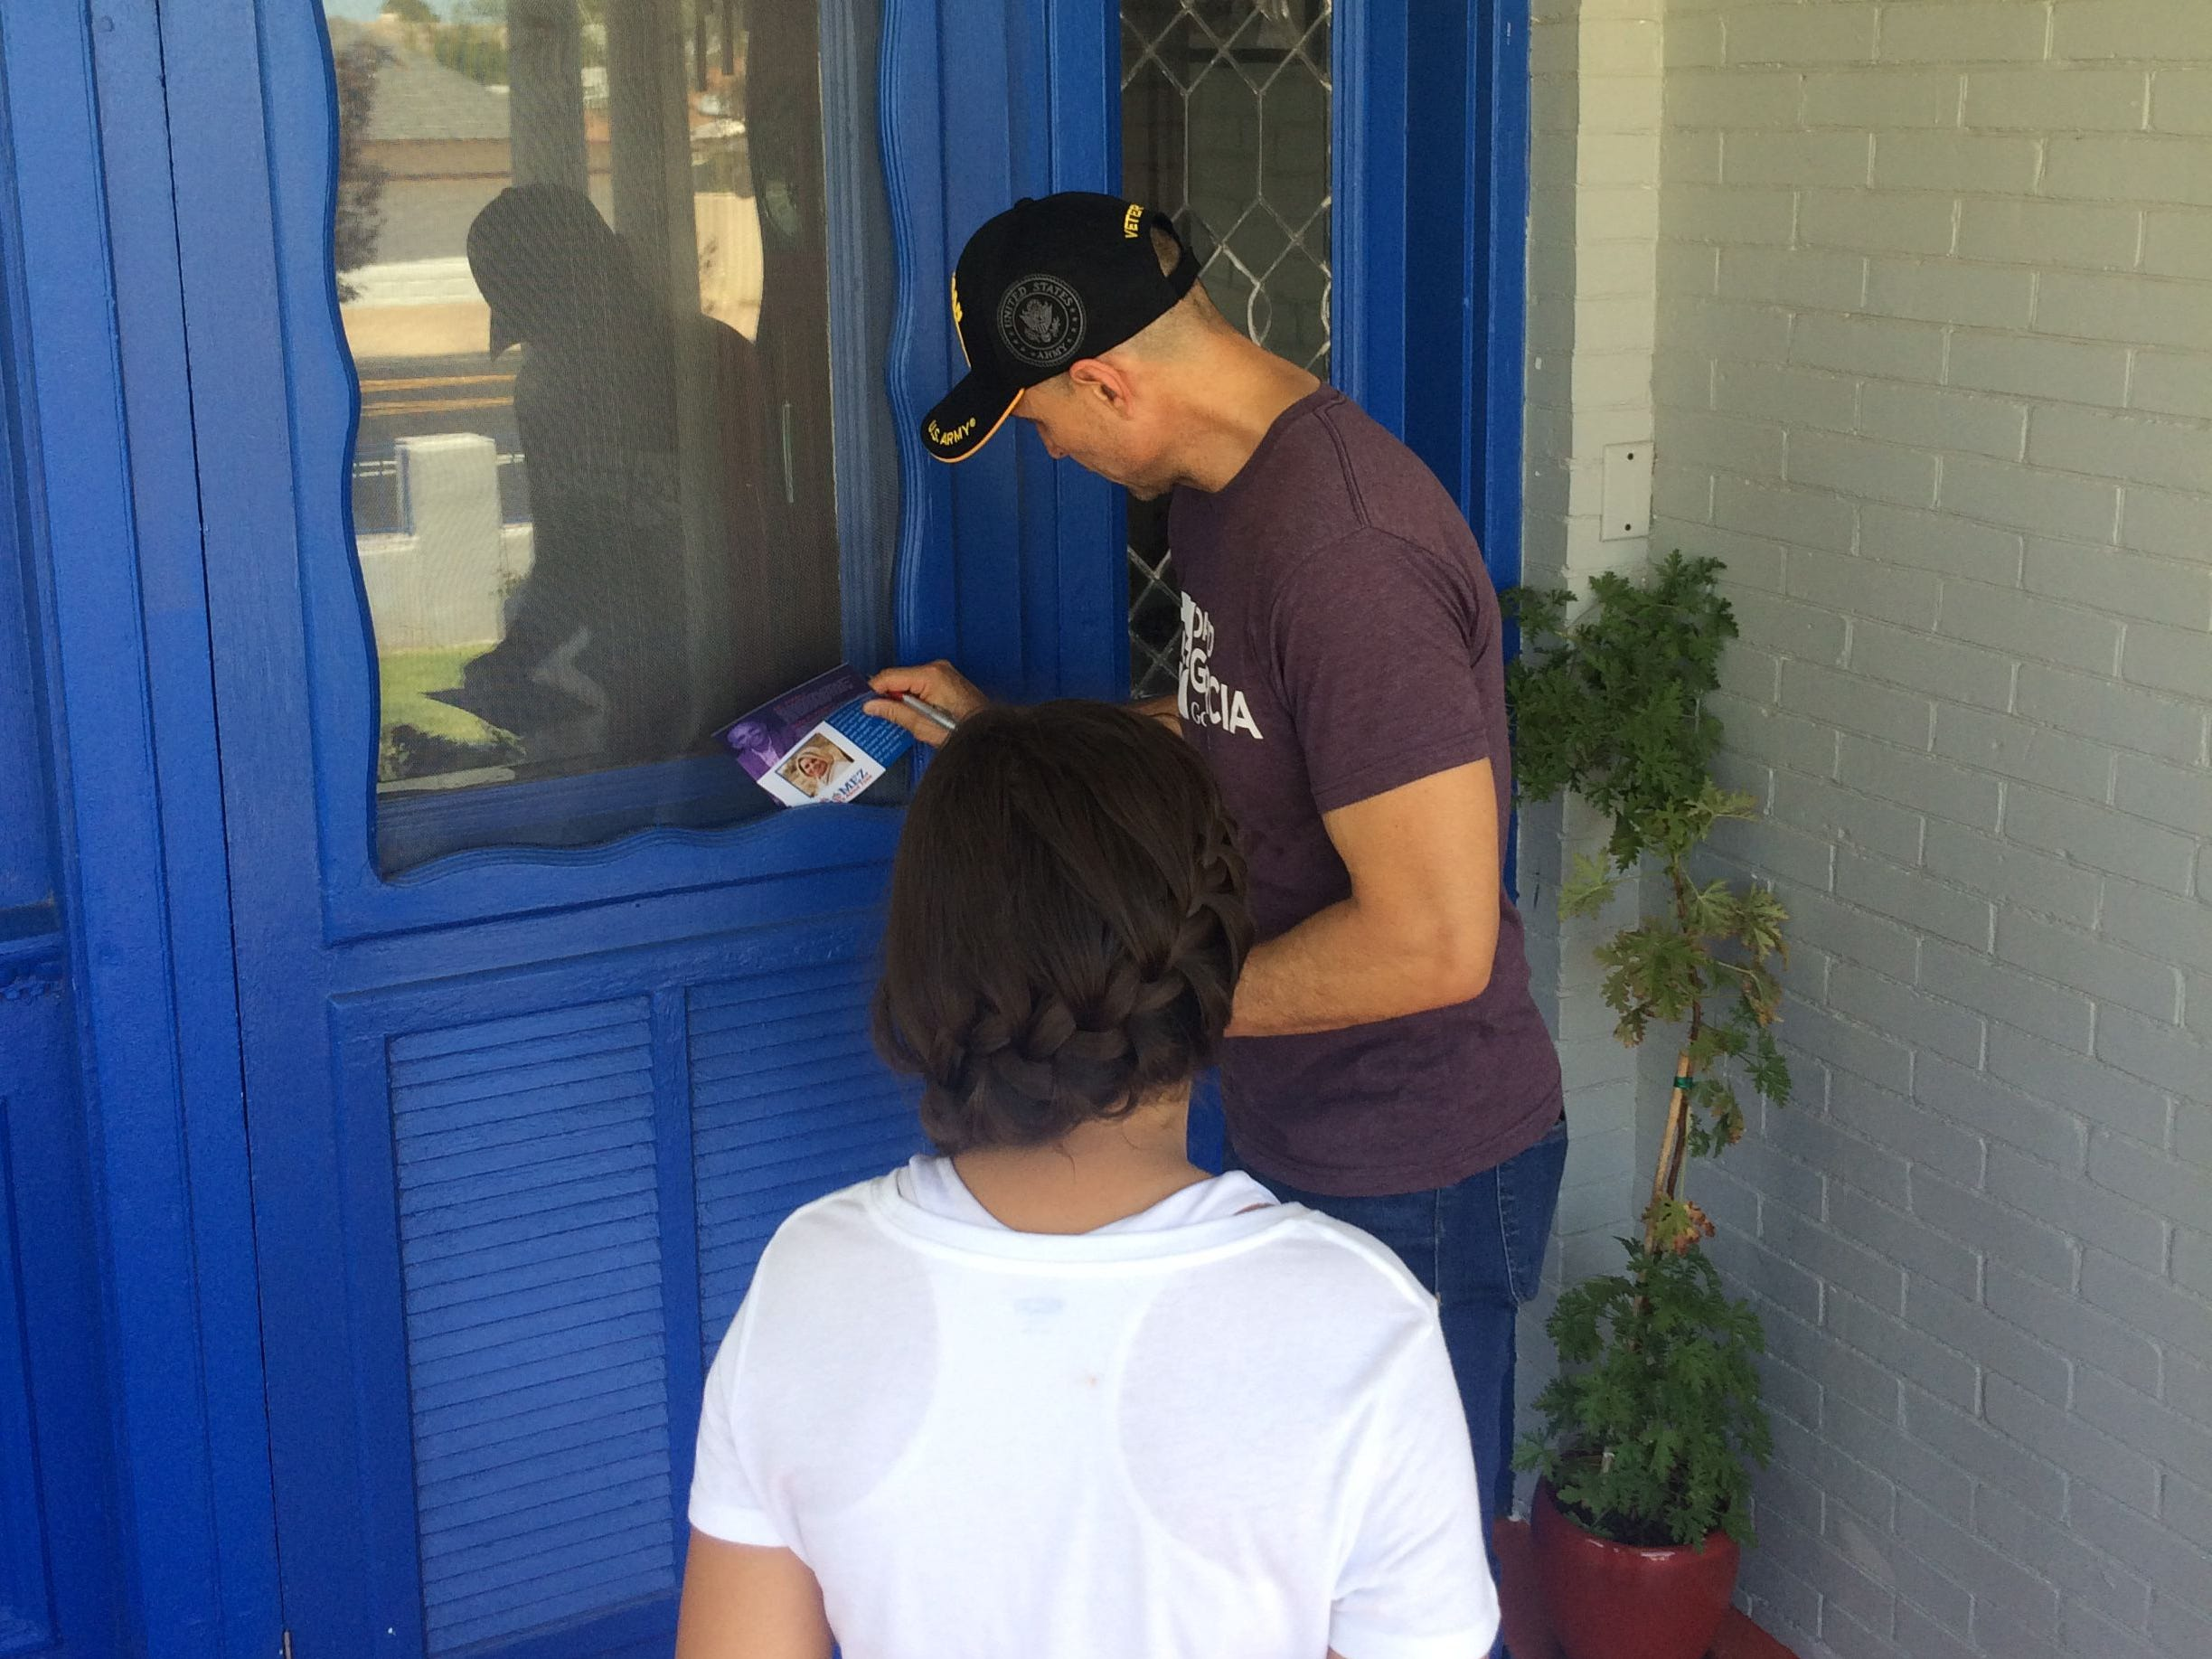 Democratic gubernatorial candidate David Garcia leaves campaign literature at a home in Douglas on Aug. 19, 2018, while his daughter, Lola, looks on.